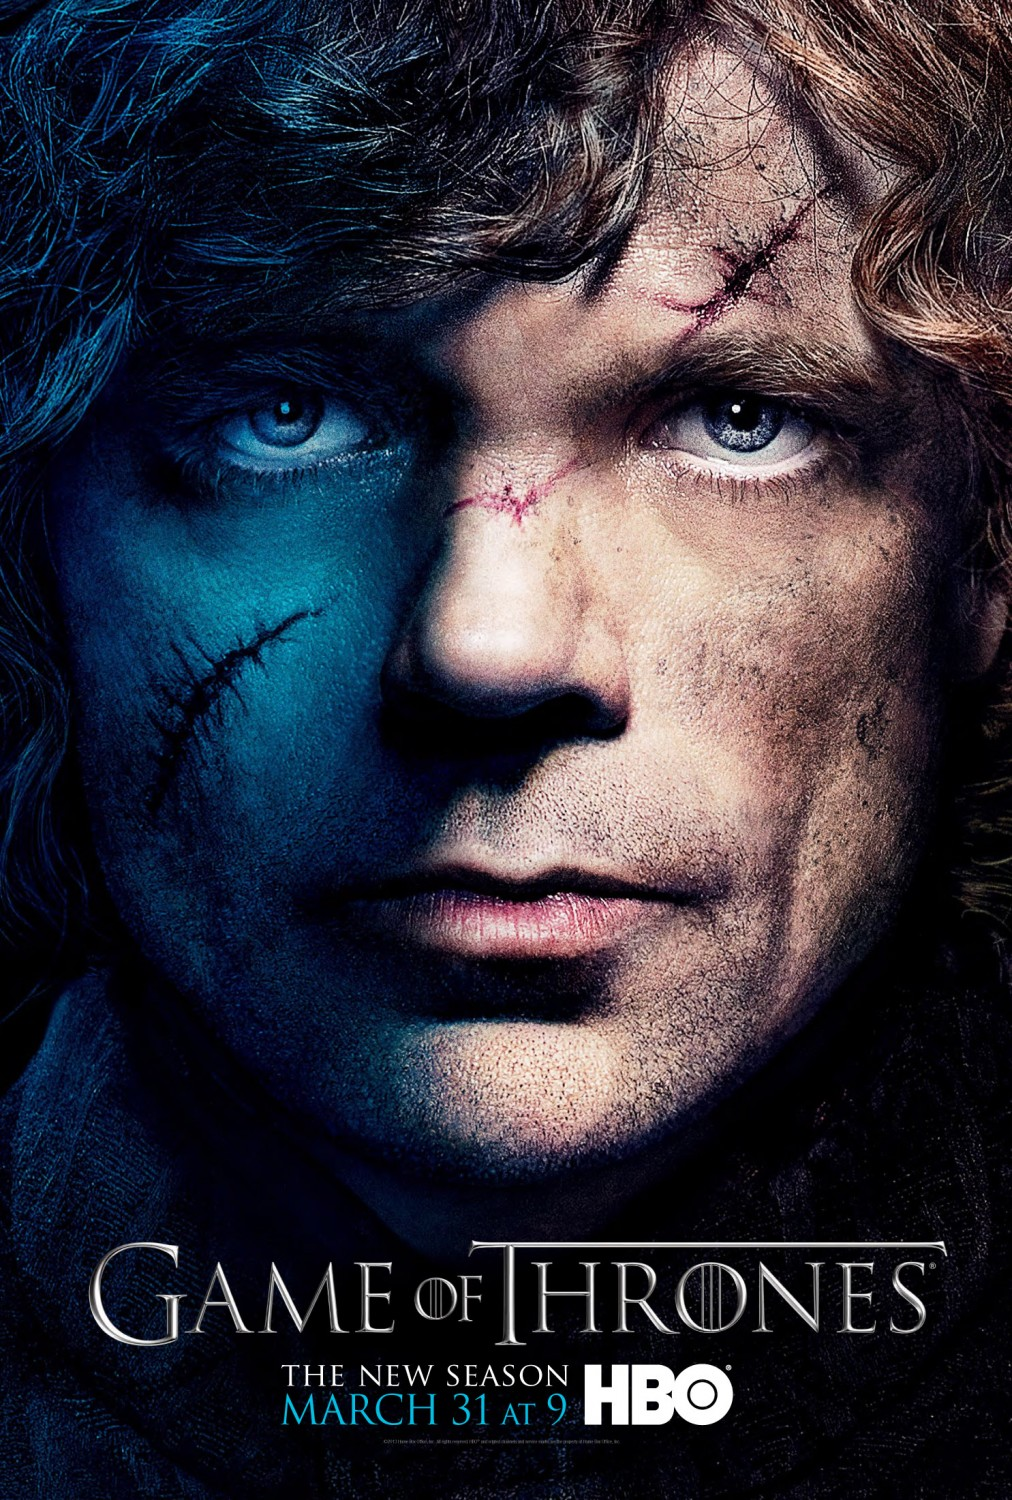 The Blot Says Game Of Thrones Season 3 Character Television Posters